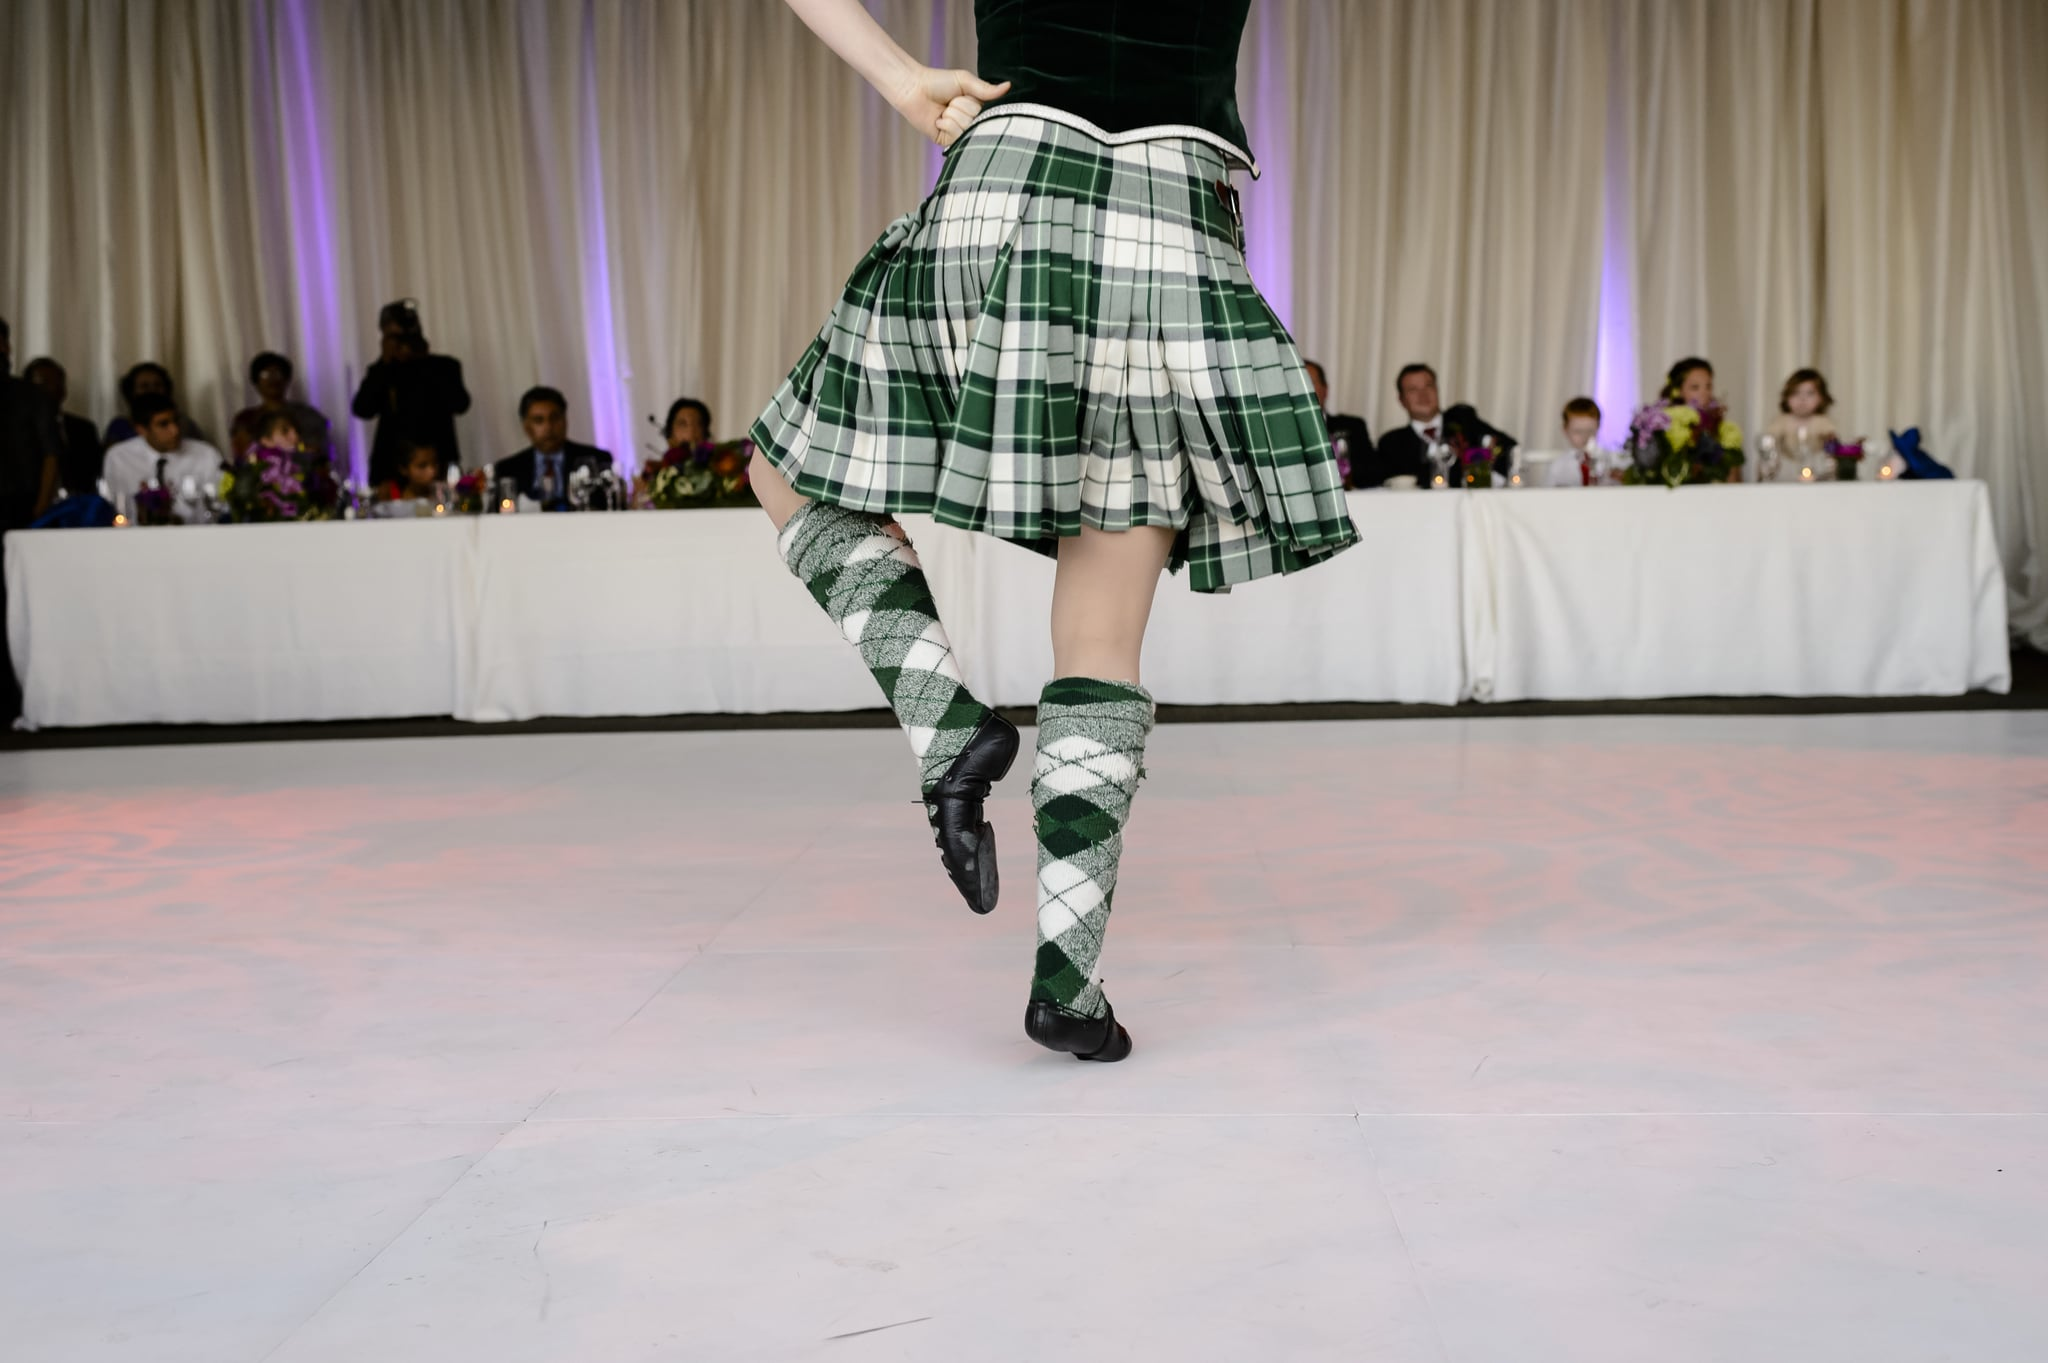 Reception entertainment included Scottish dancers. Photo by Chrisman Studios